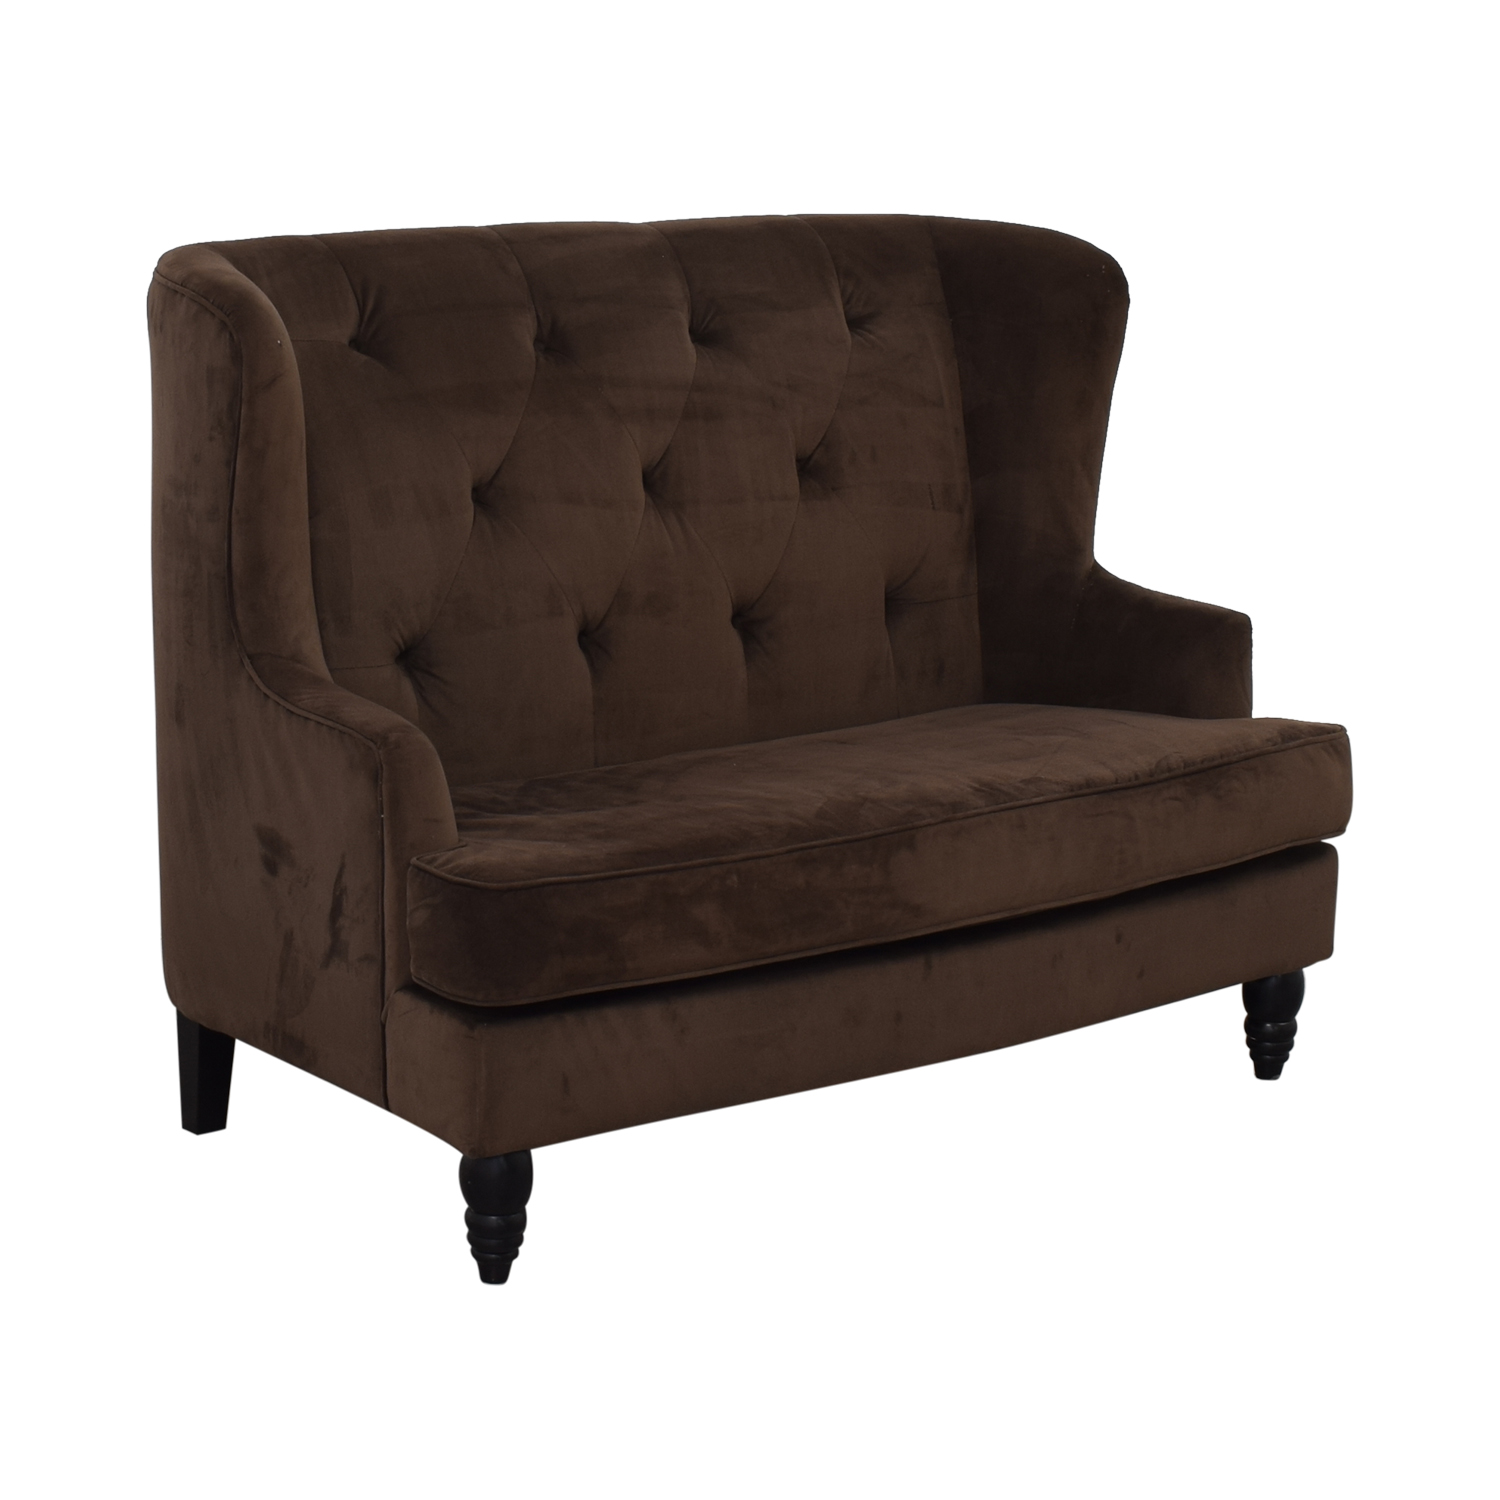 Brown Tufted High Back Loveseat price